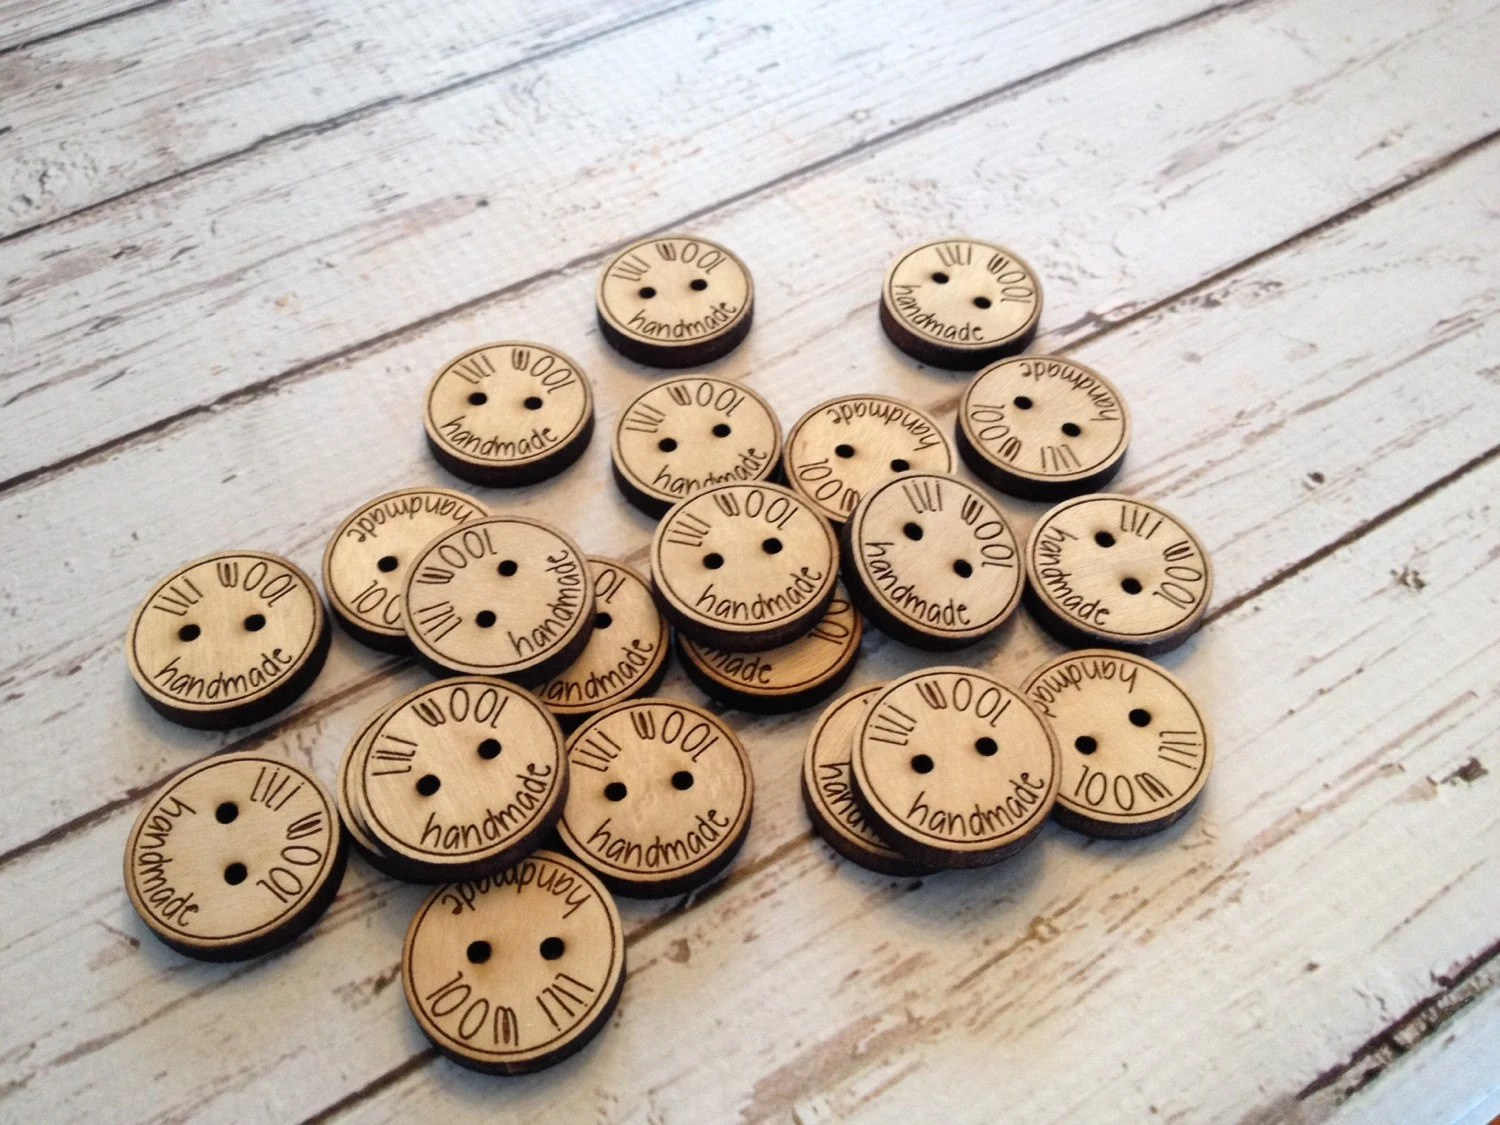 Custom button design  personalized wood button engraved image 2